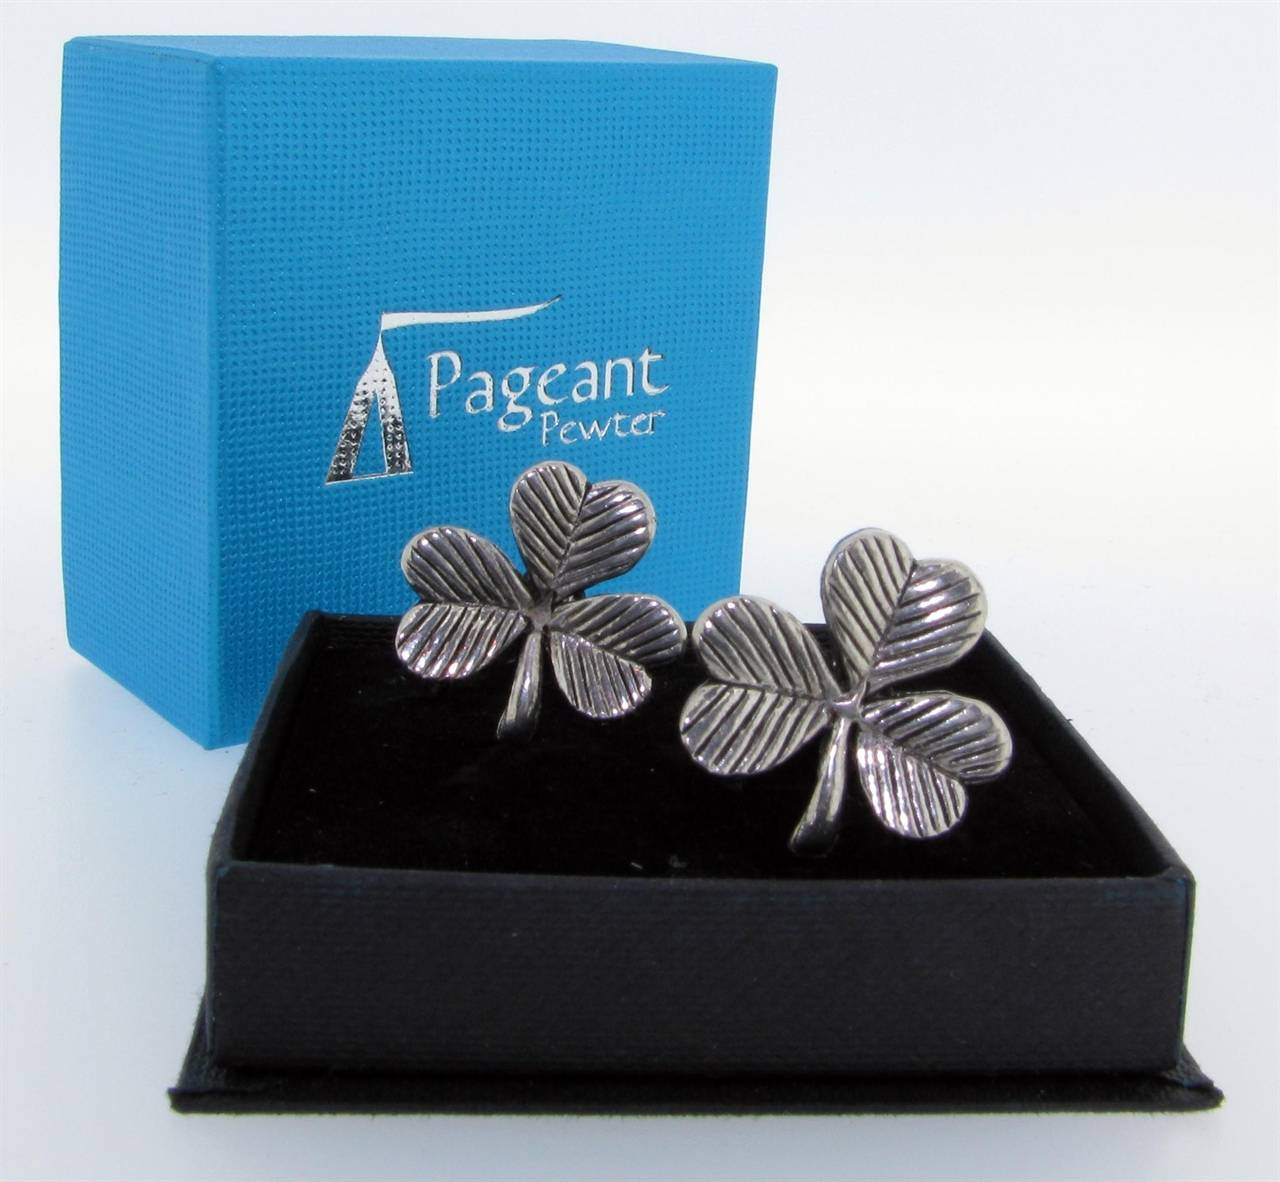 Shamrock Cufflinks - high quality pewter gifts from Pageant Pewter